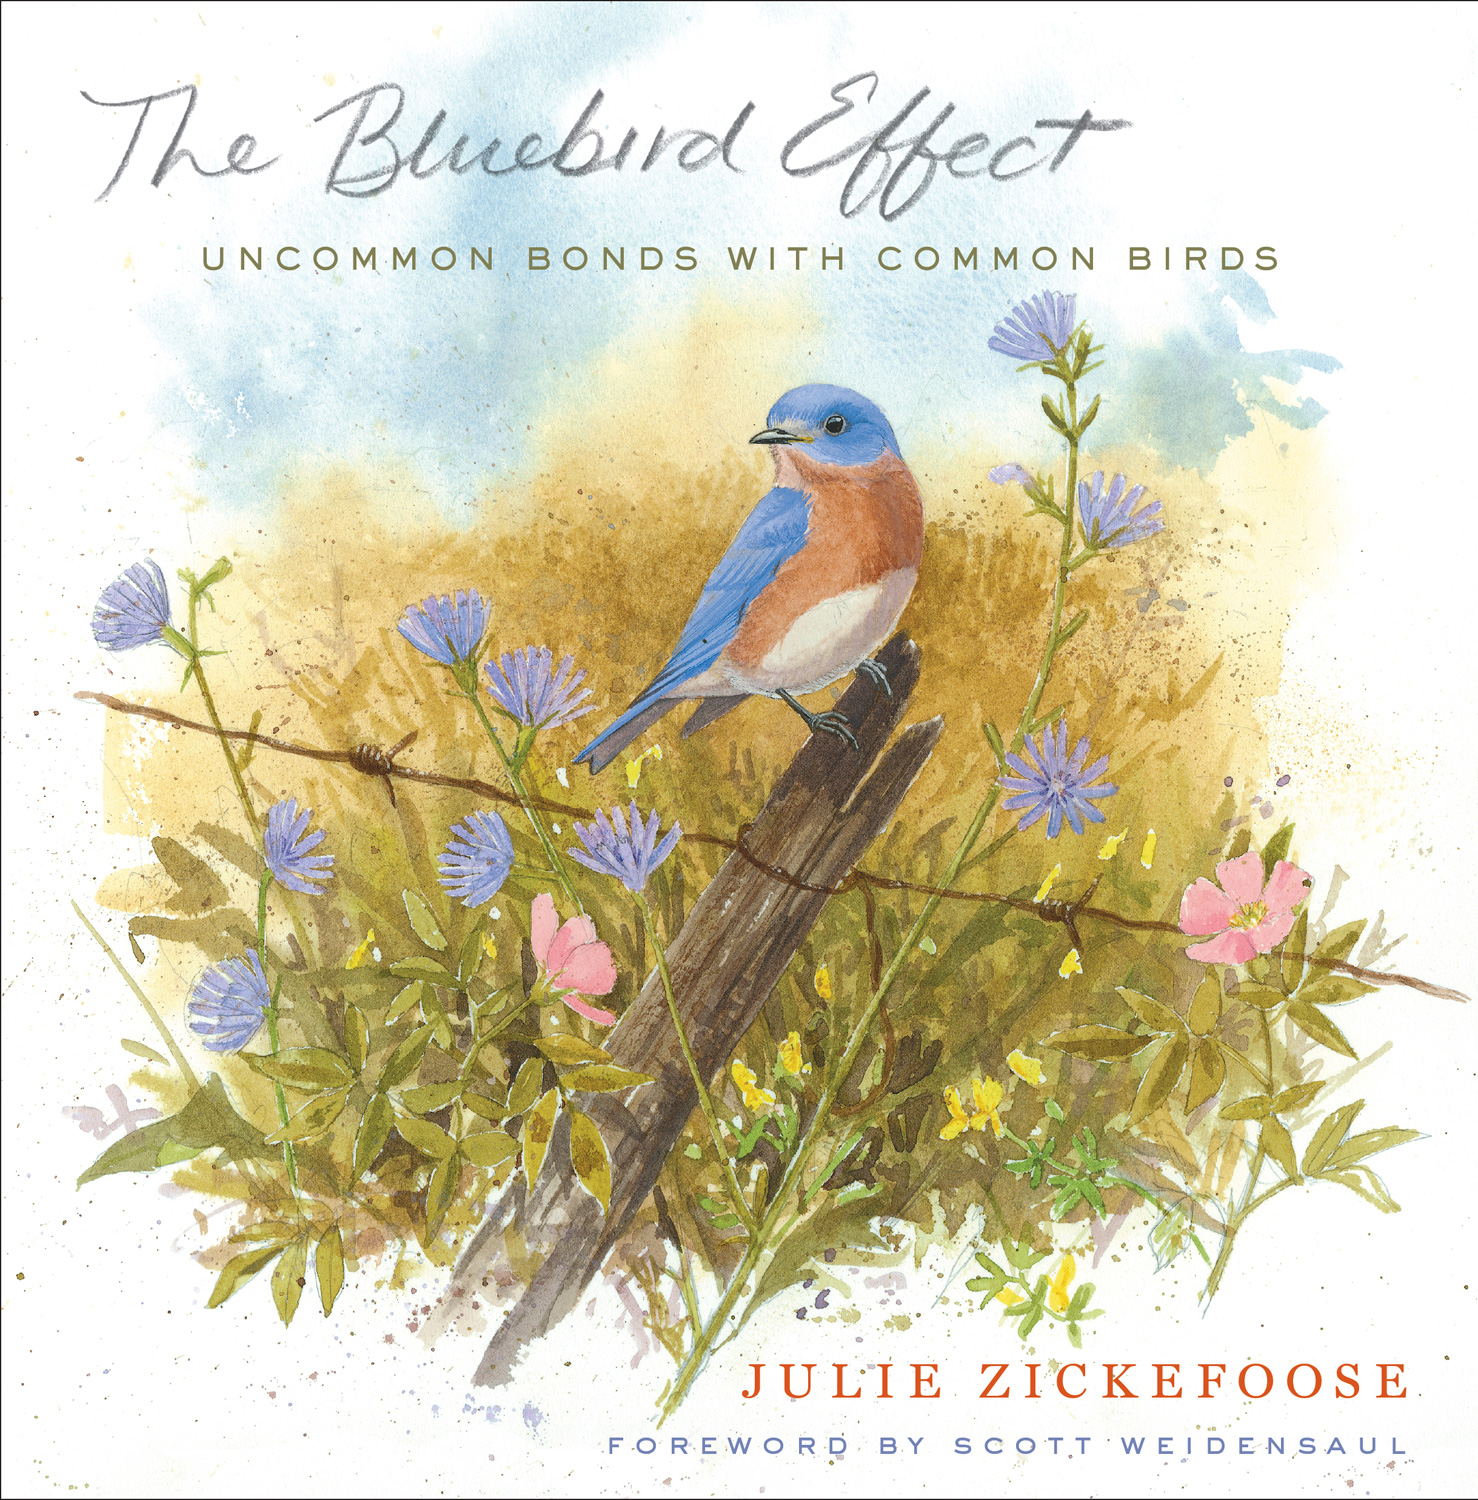 The Bluebird Effect: Uncommon Bonds with Common Birds book cover